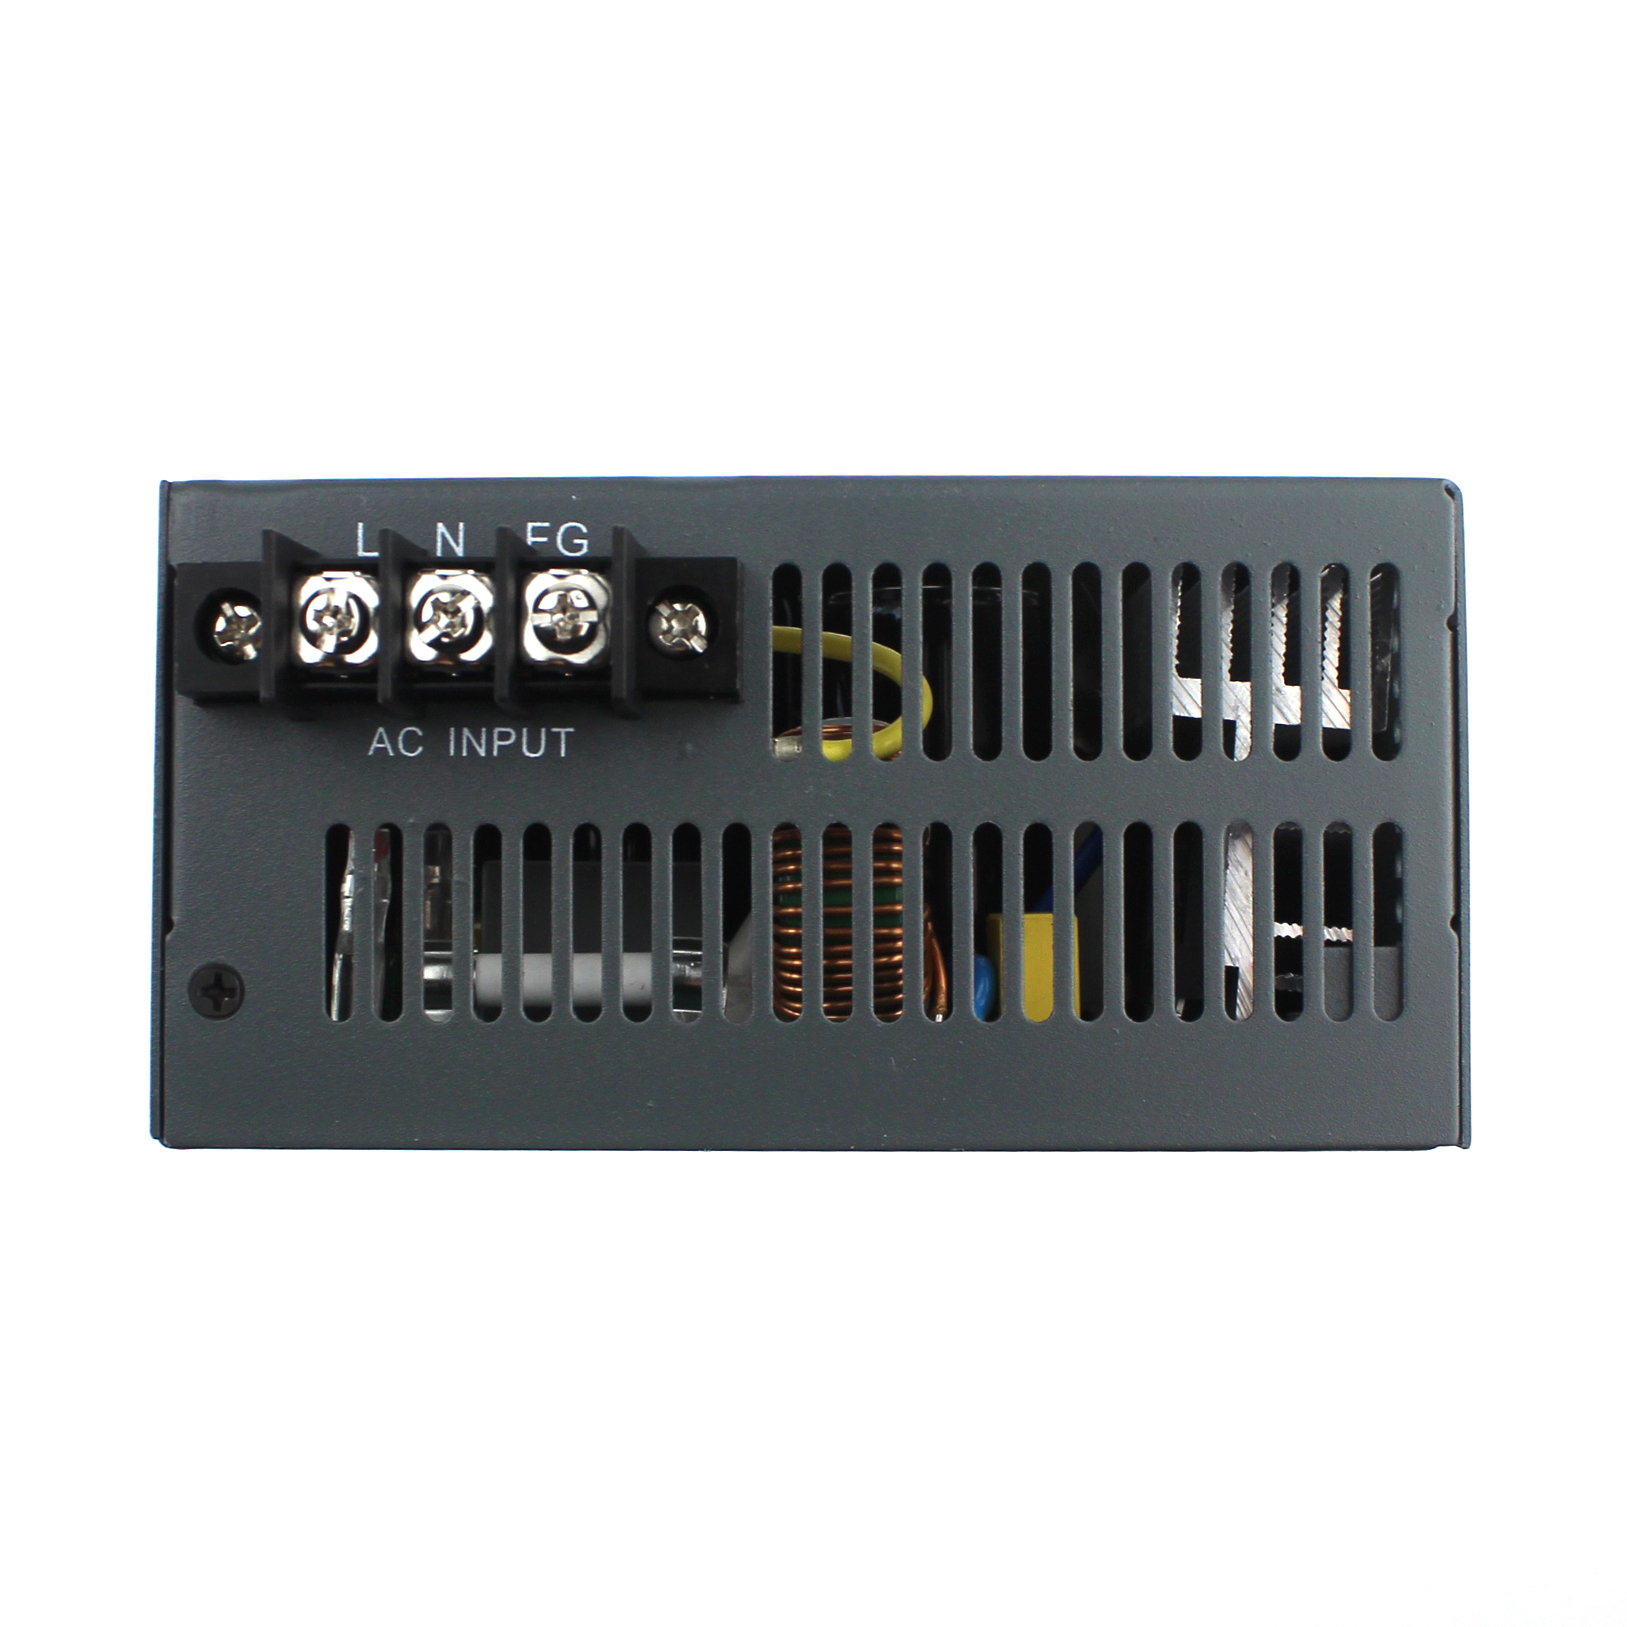 S-1000-15 High Quality 1000W 15VDC SMPS Switching Power Supply